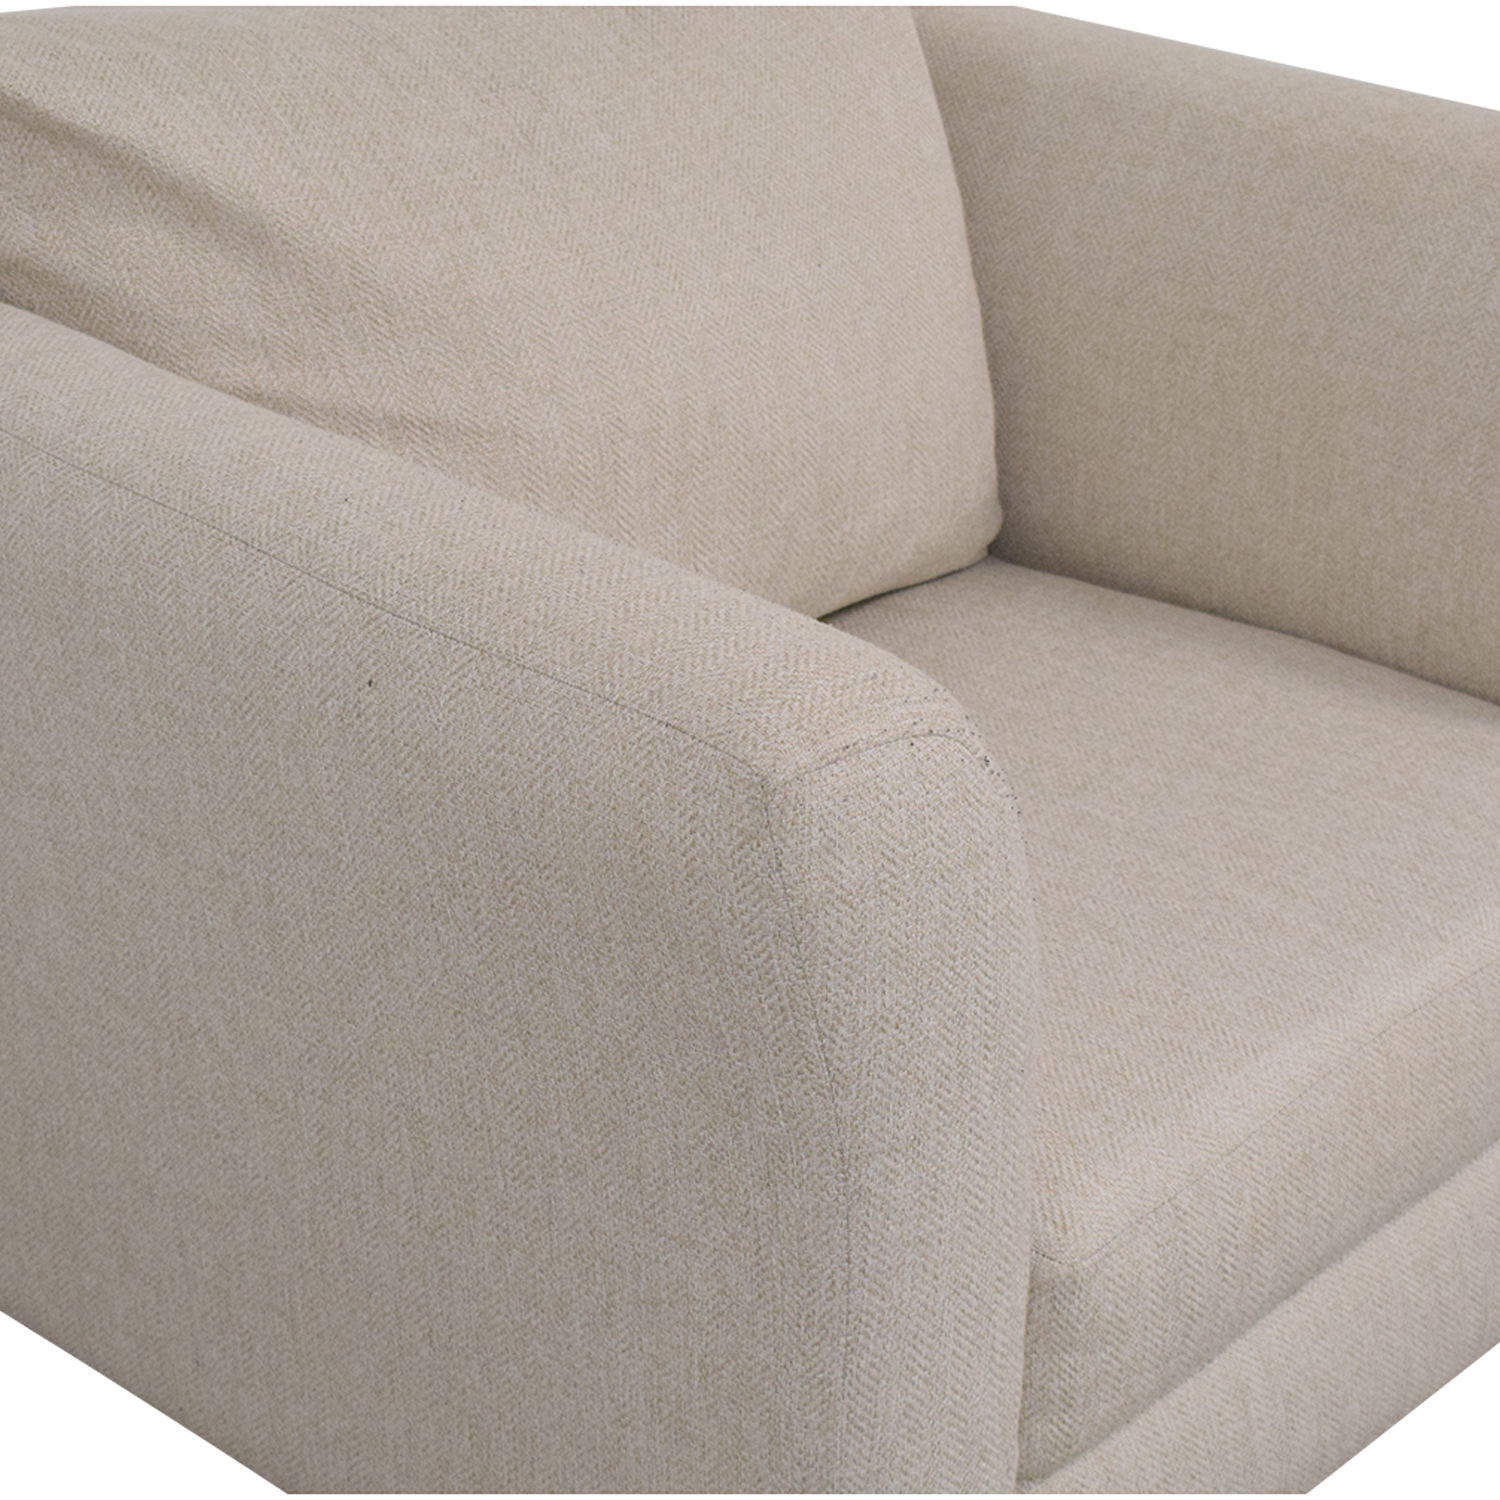 Raymour & Flanigan Raymour & Flanigan Accent Chair nyc